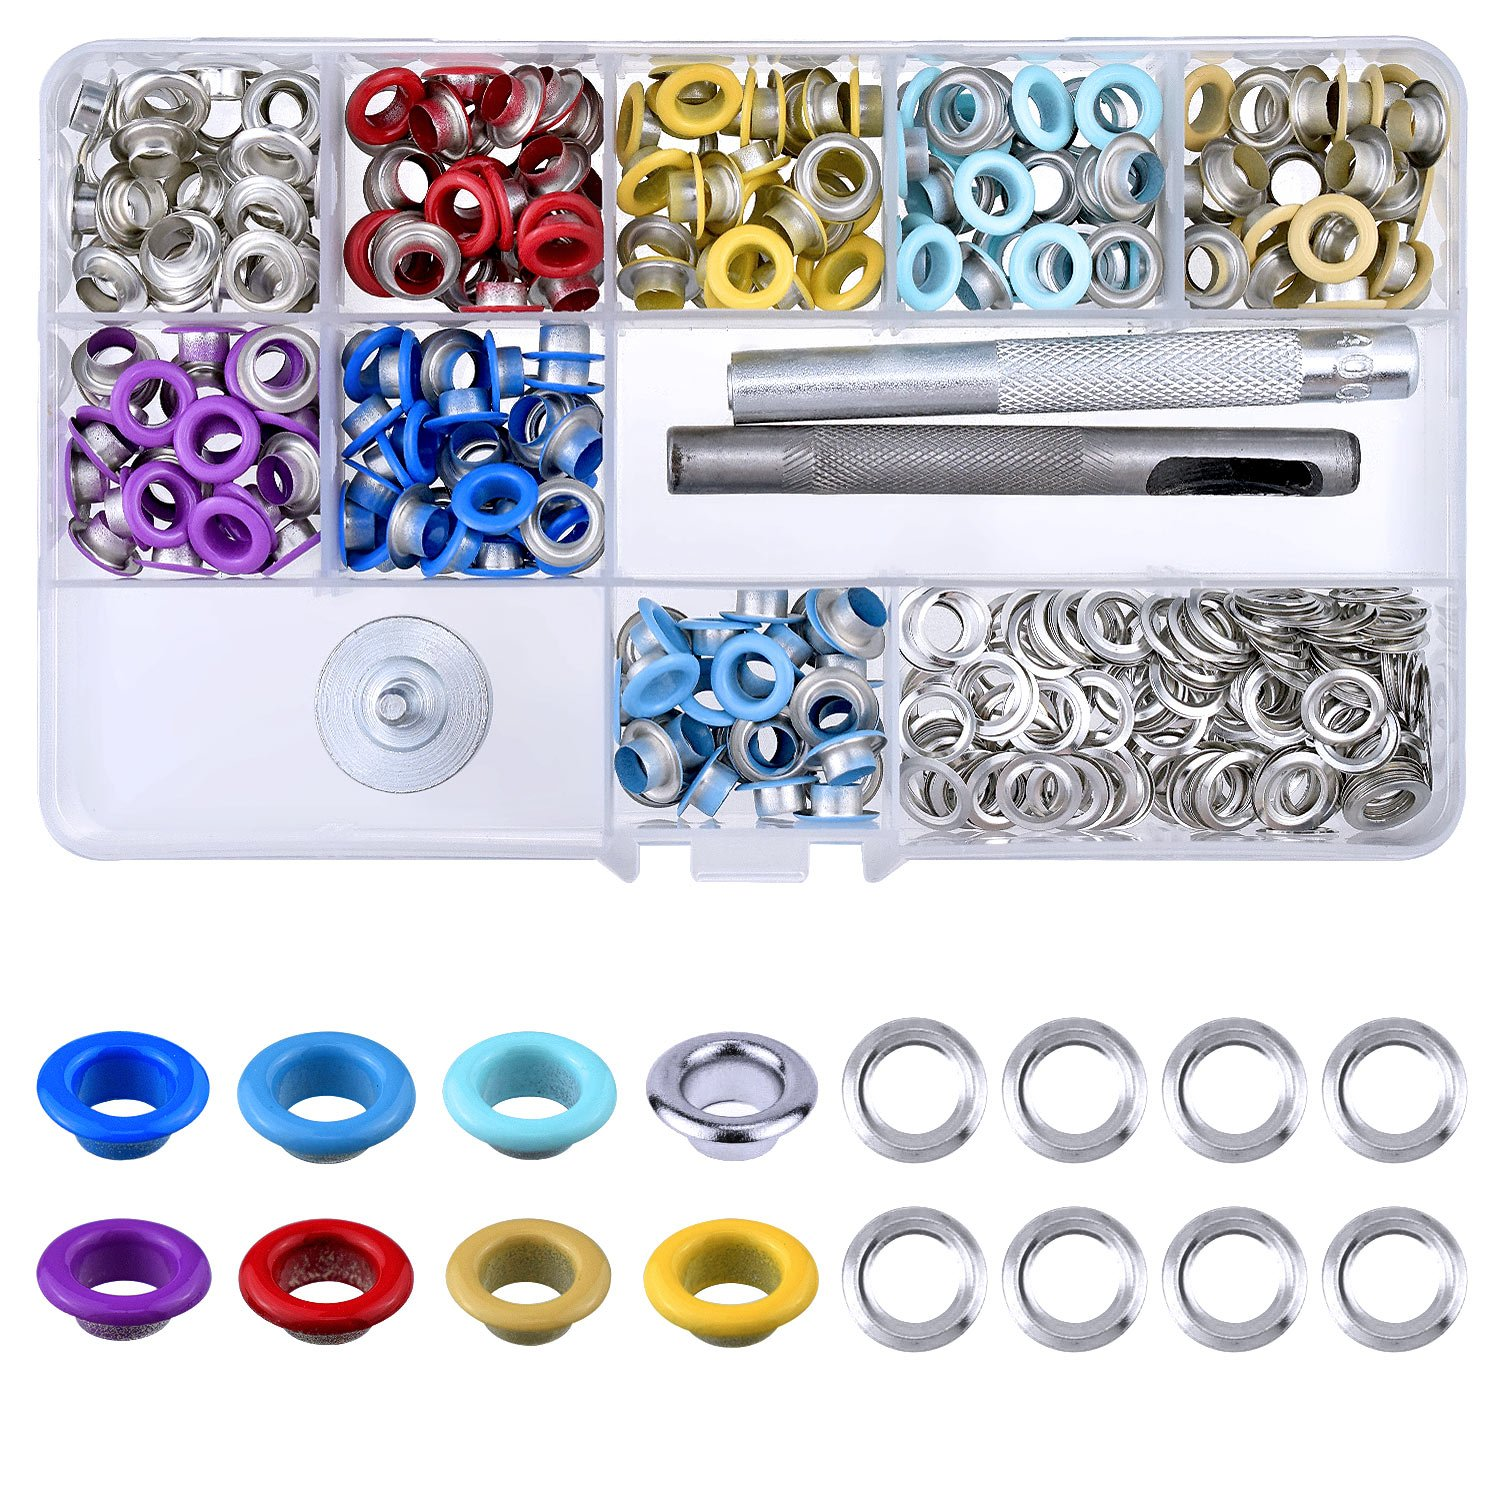 BTNOW 240 Pieces Grommet Kit Metal Eyelet Kit for Bag, Shoes, DIY Project, 8 Colors, 1/4 inches 4337005516